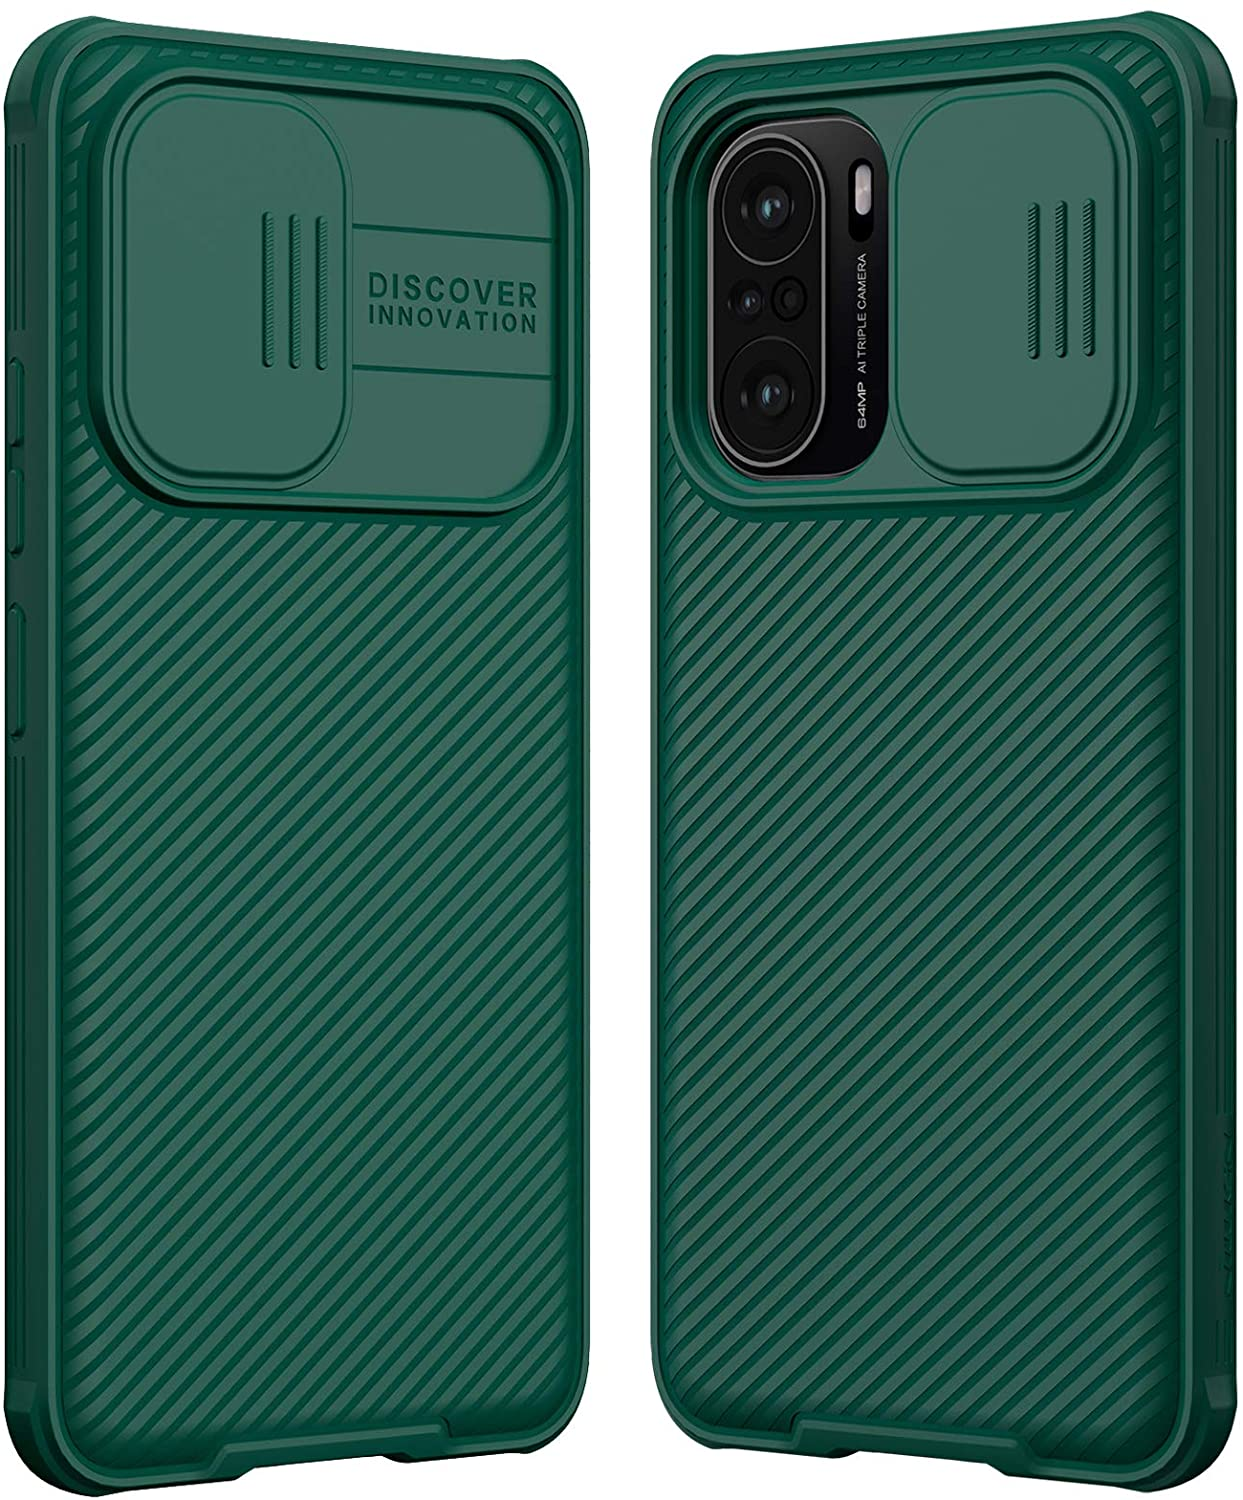 TPU Bumper PC Back Cover For Xiaomi Poco F3 GT Slide Lens Privacy Protection Shockproof Protective Case (Green)